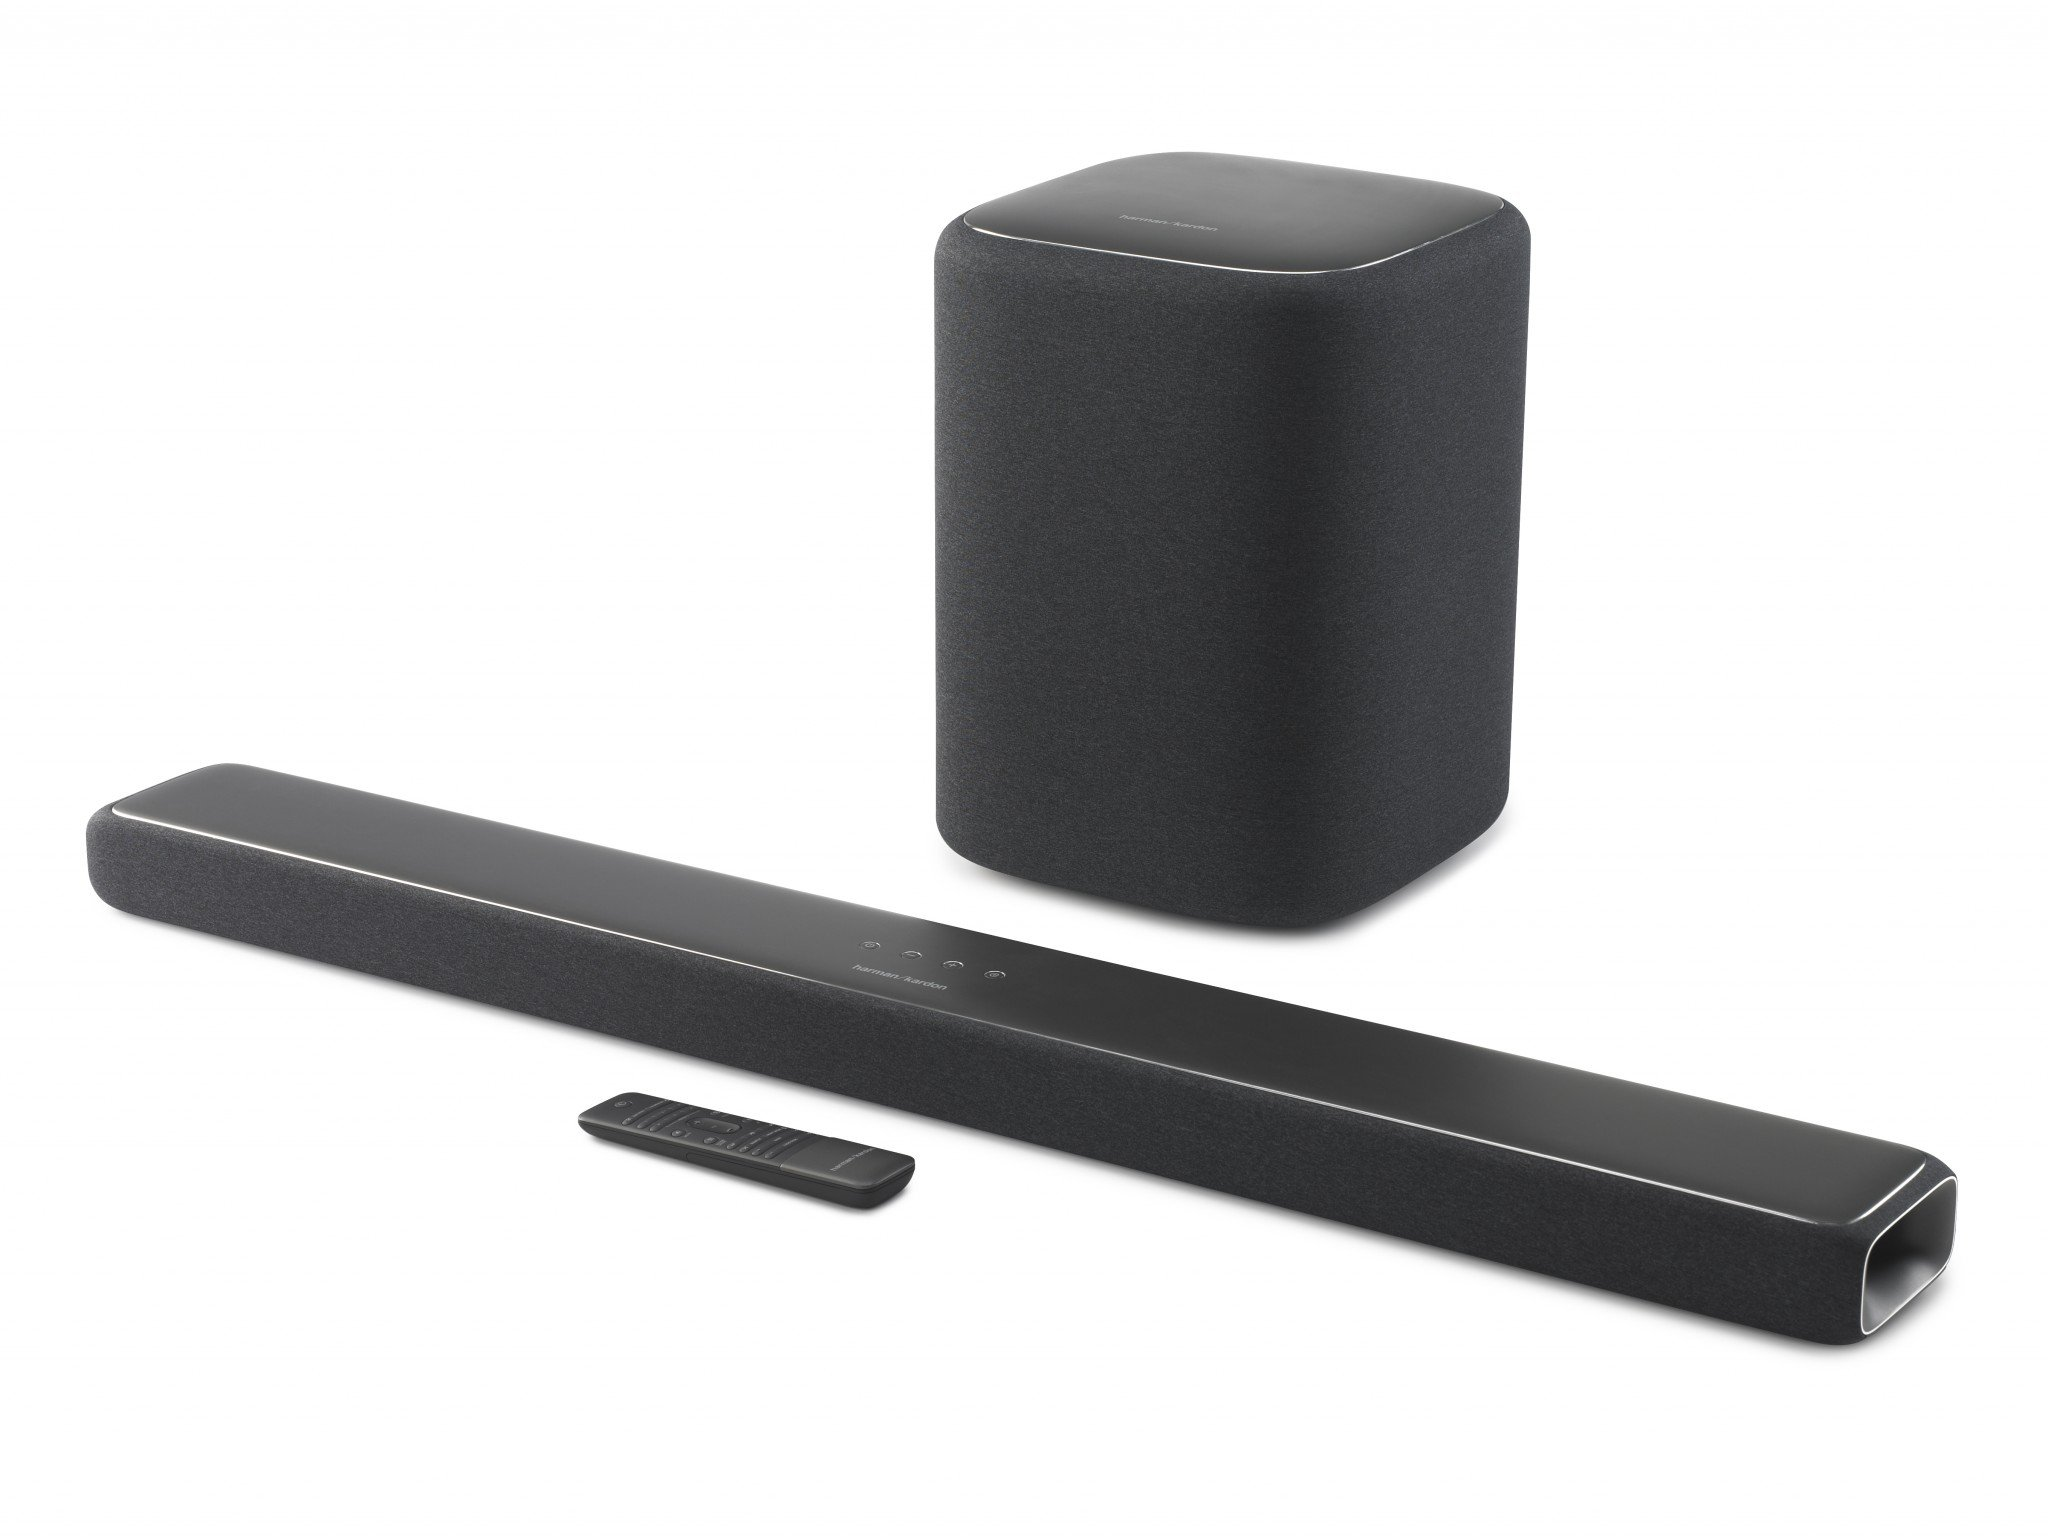 harman kardon enchant soundbar